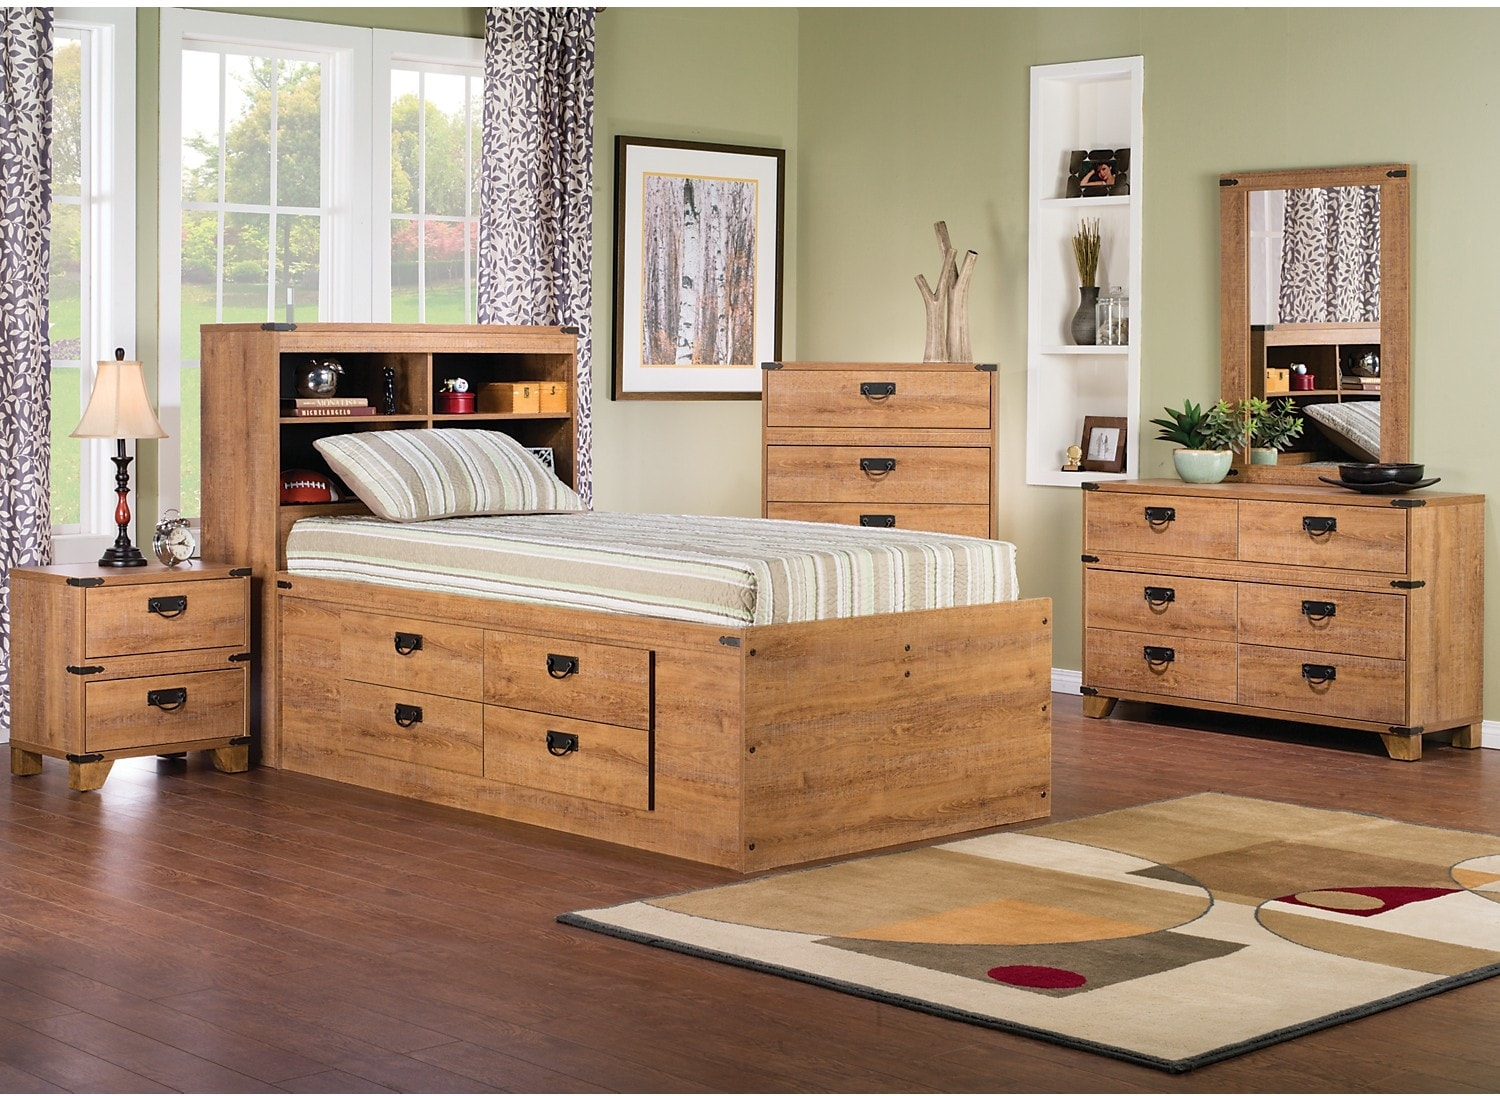 Kids Furniture - Fleetwood 7-Piece Twin Bookcase Storage Bedroom Package